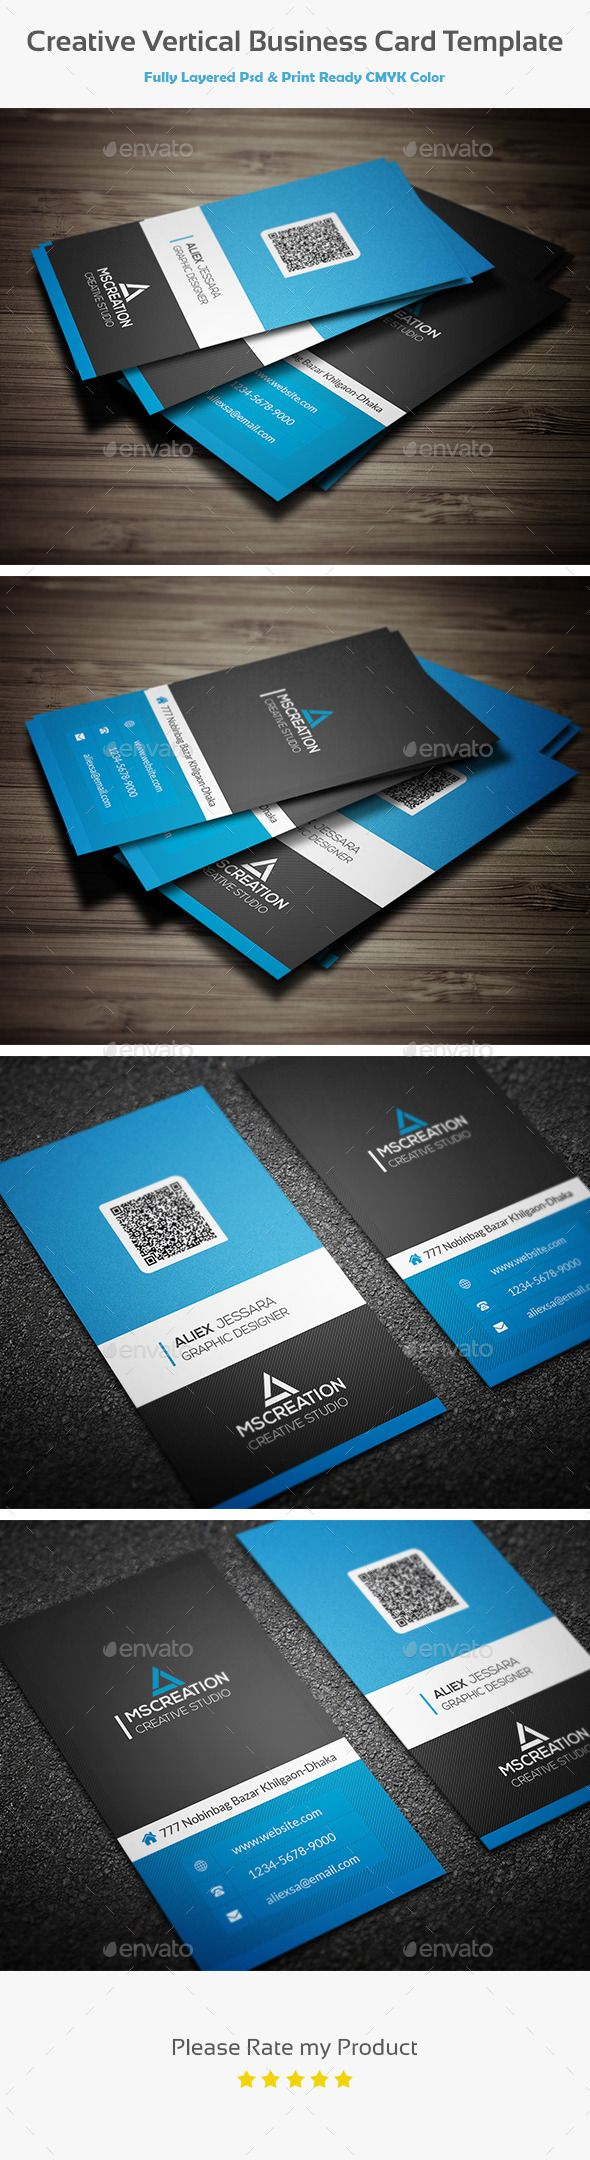 32 best vistaprint business cards images on pinterest vistaprint creative vertical business card template 2 reheart Images